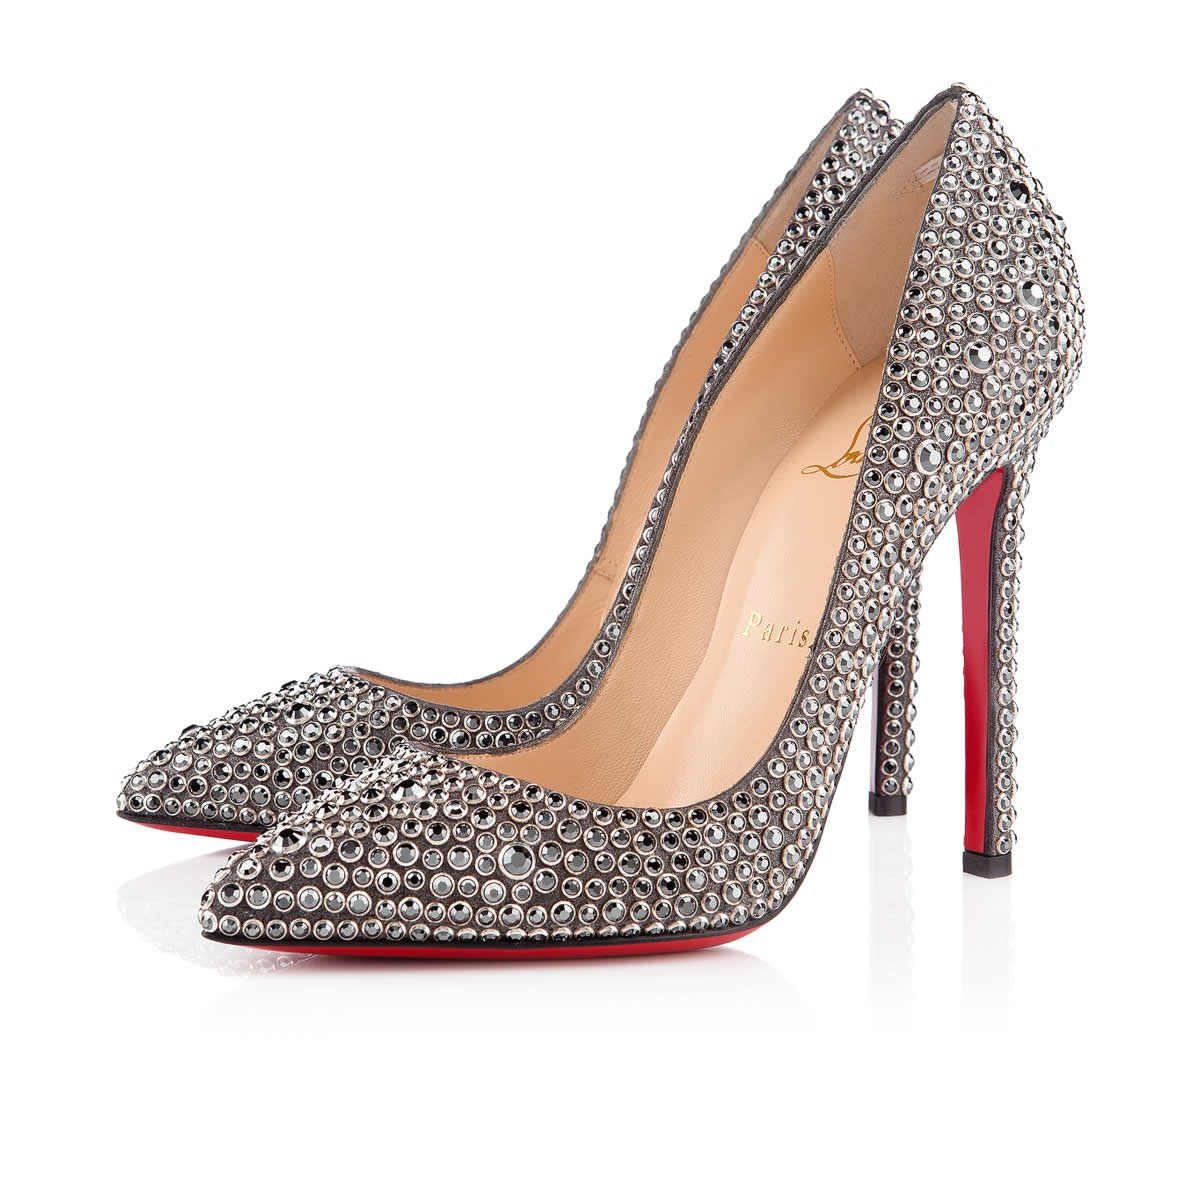 christian louboutin bridal footwear collection 2014. Black Bedroom Furniture Sets. Home Design Ideas